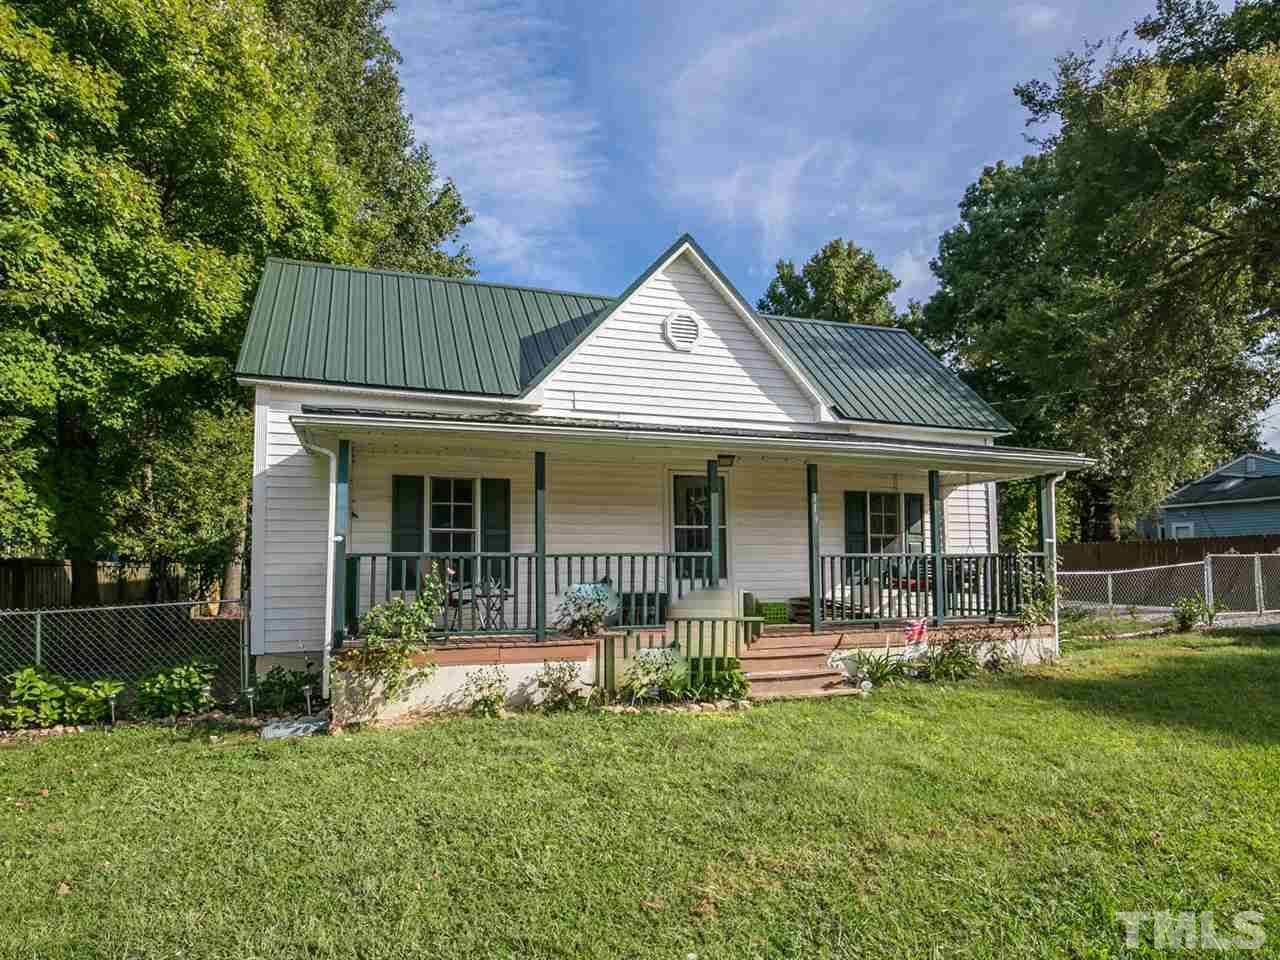 119 E Winston St, Youngsville, NC